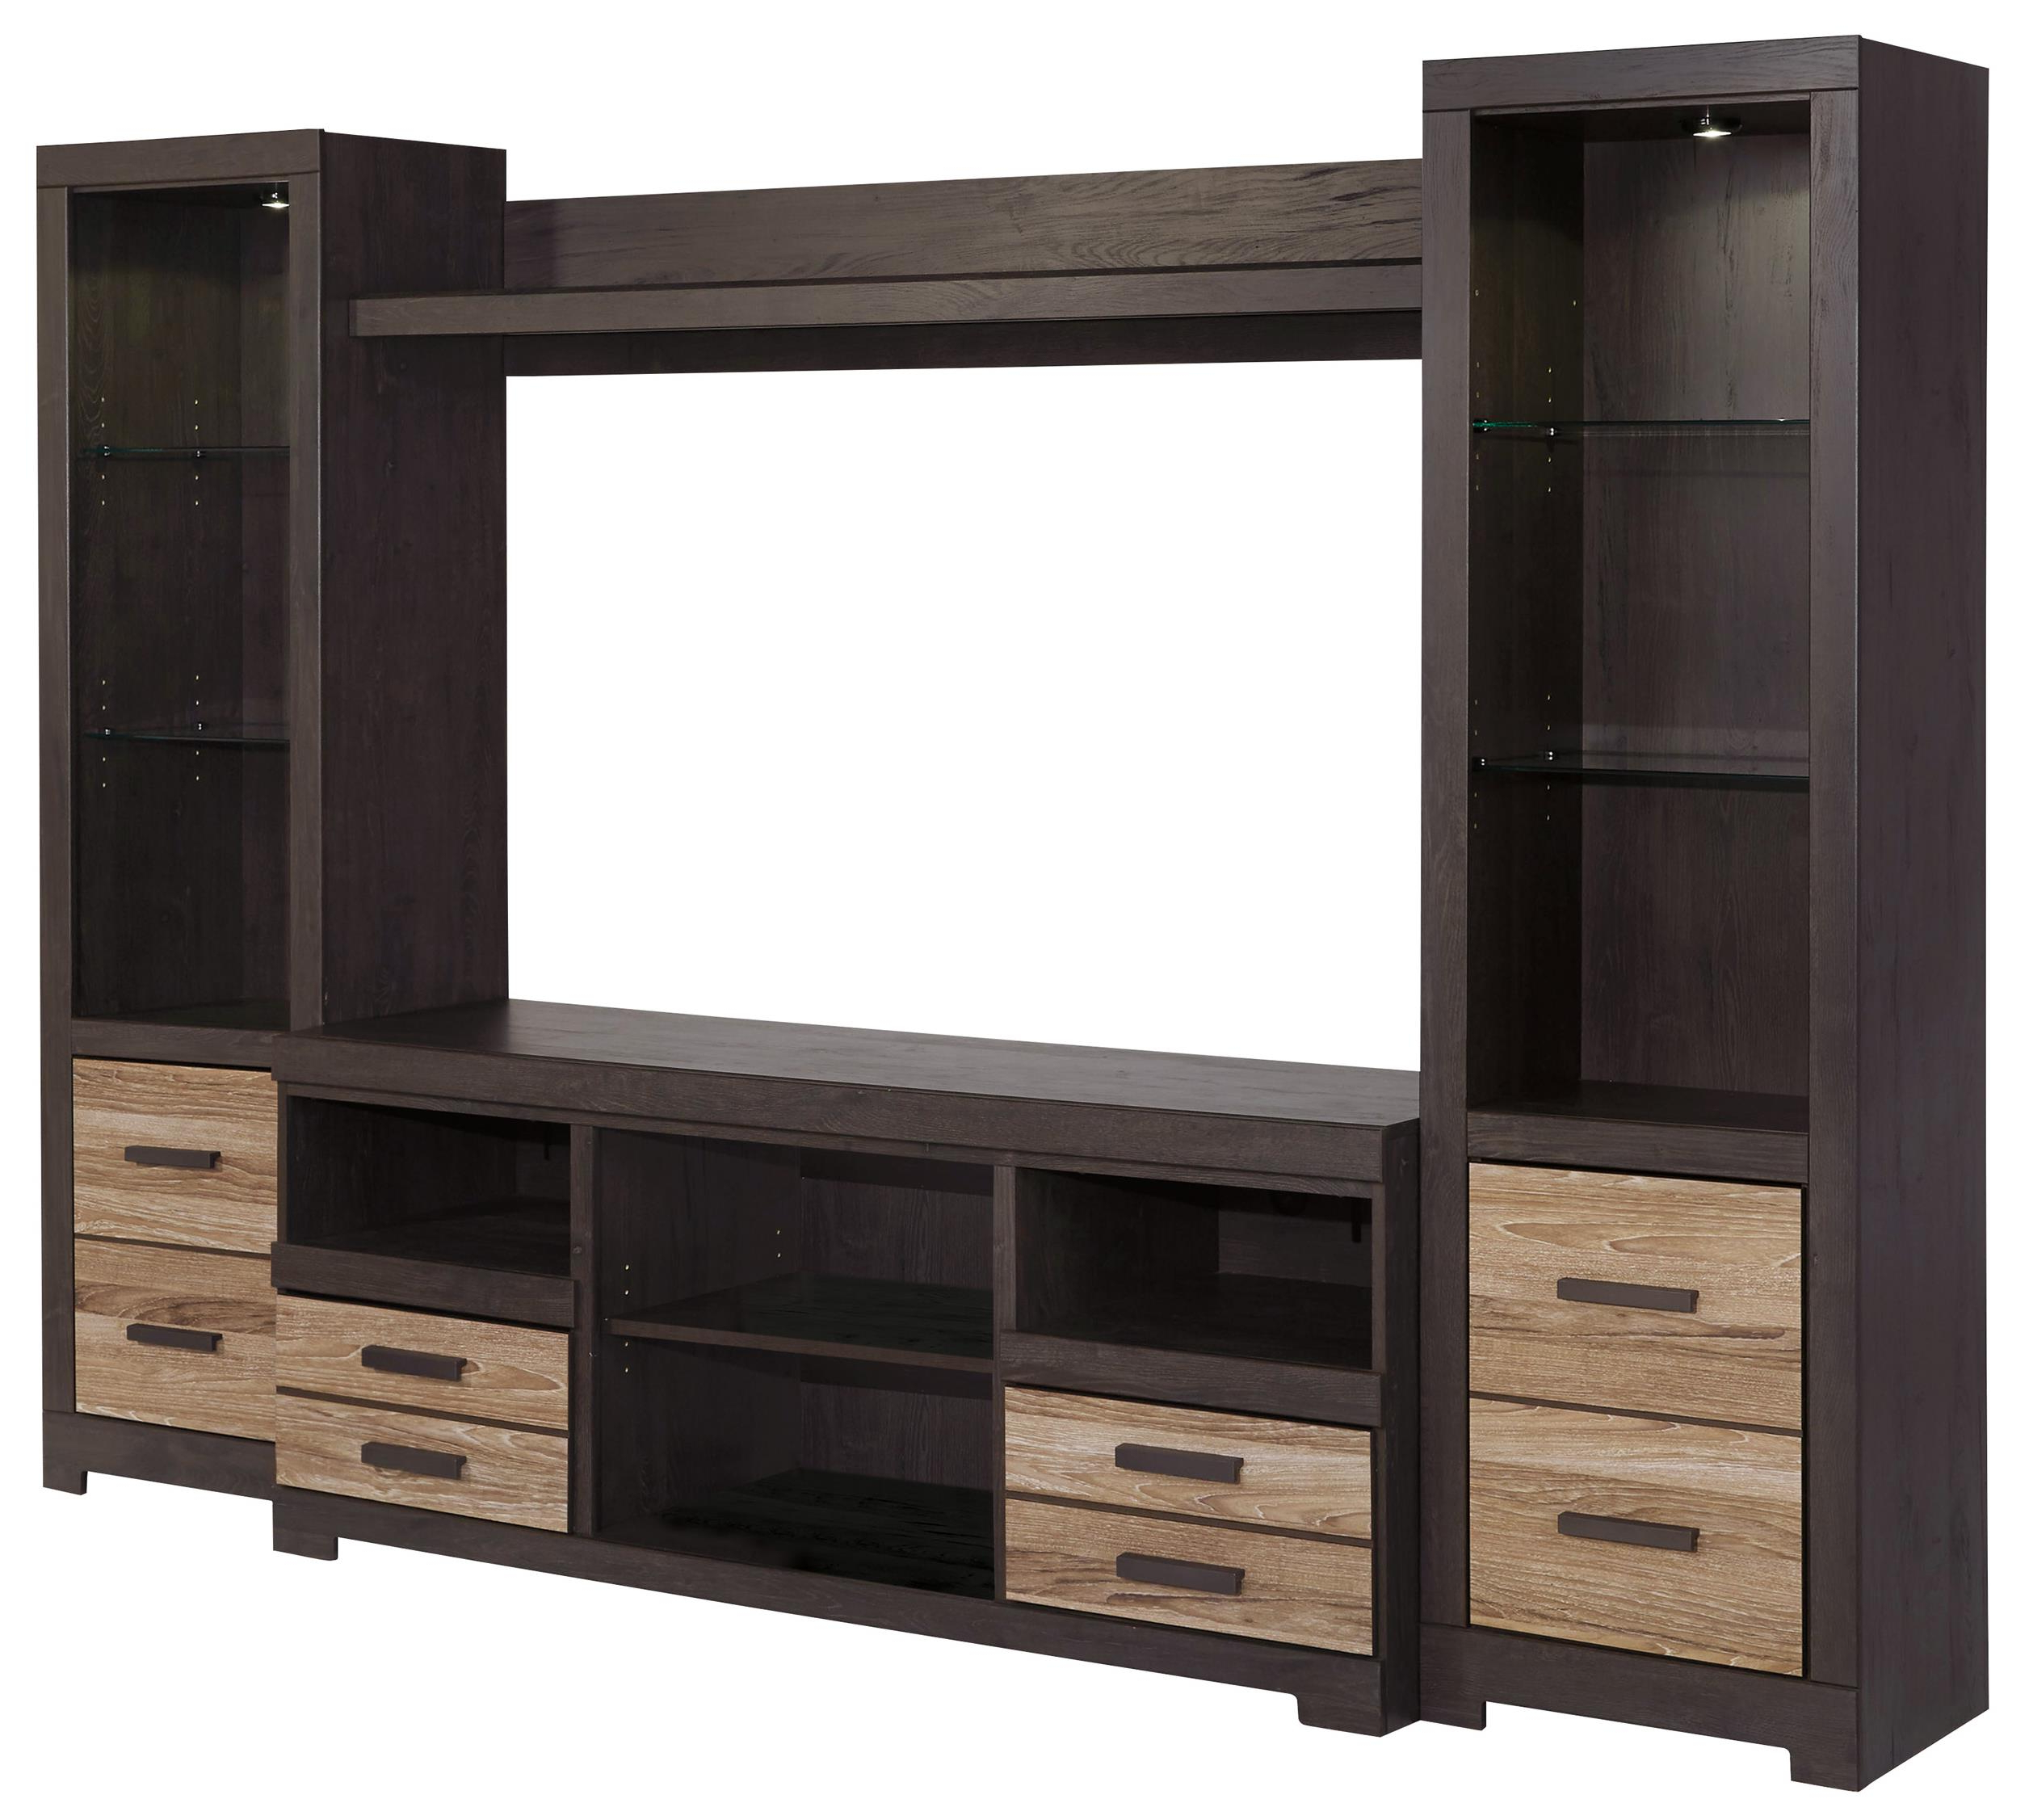 Signature Designashley Harlinton Large Tv Stand & 2 Tall Piers Within Well Known Entertainment Center Tv Stands (Gallery 18 of 20)